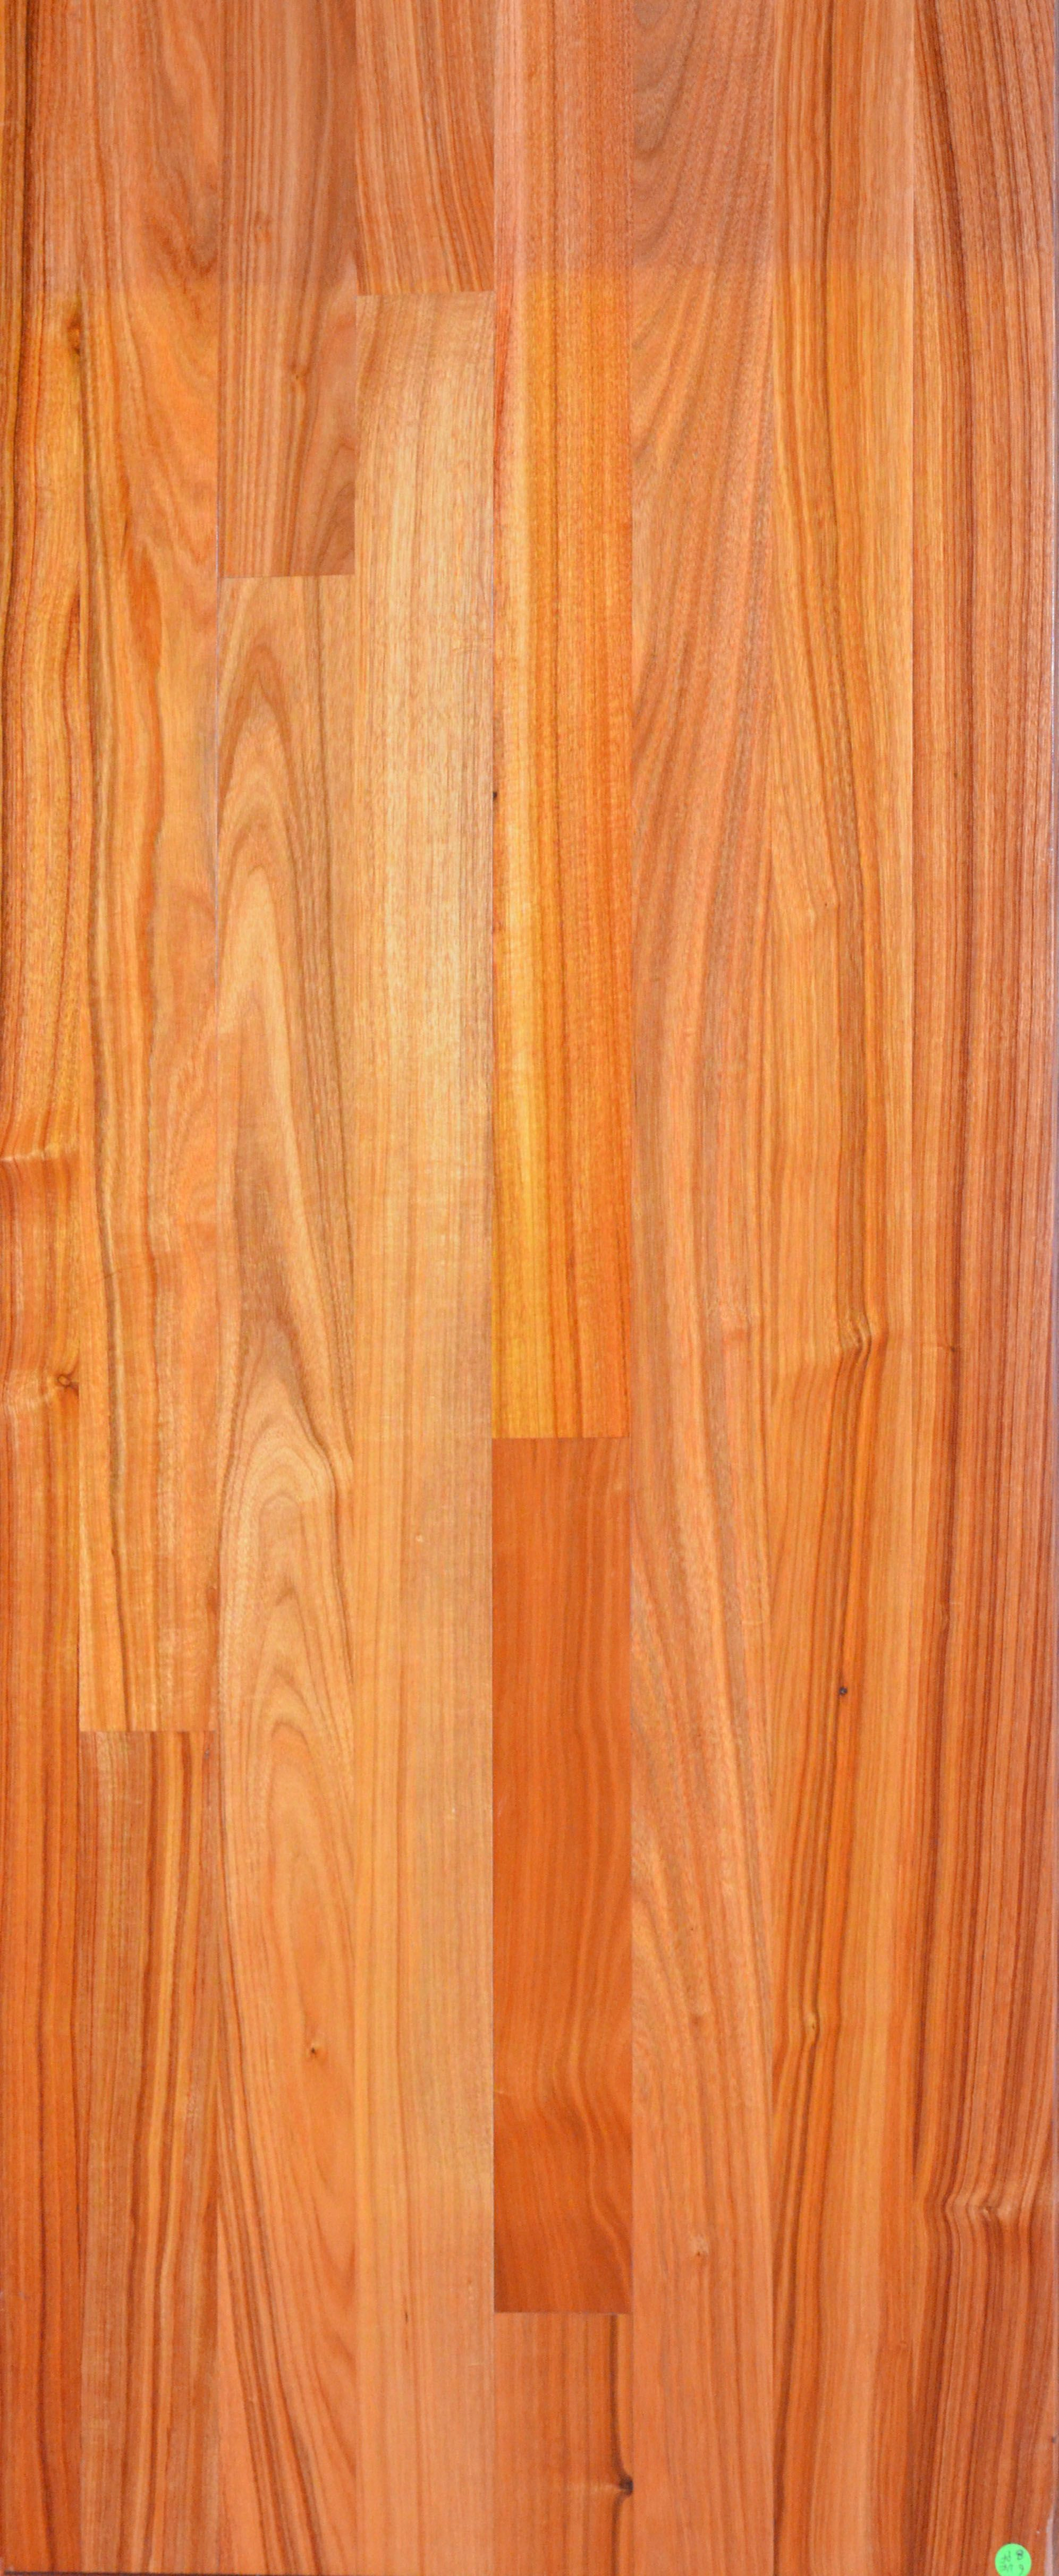 Canary our exotic hardwood flooring pinterest for Exotic hardwood flooring